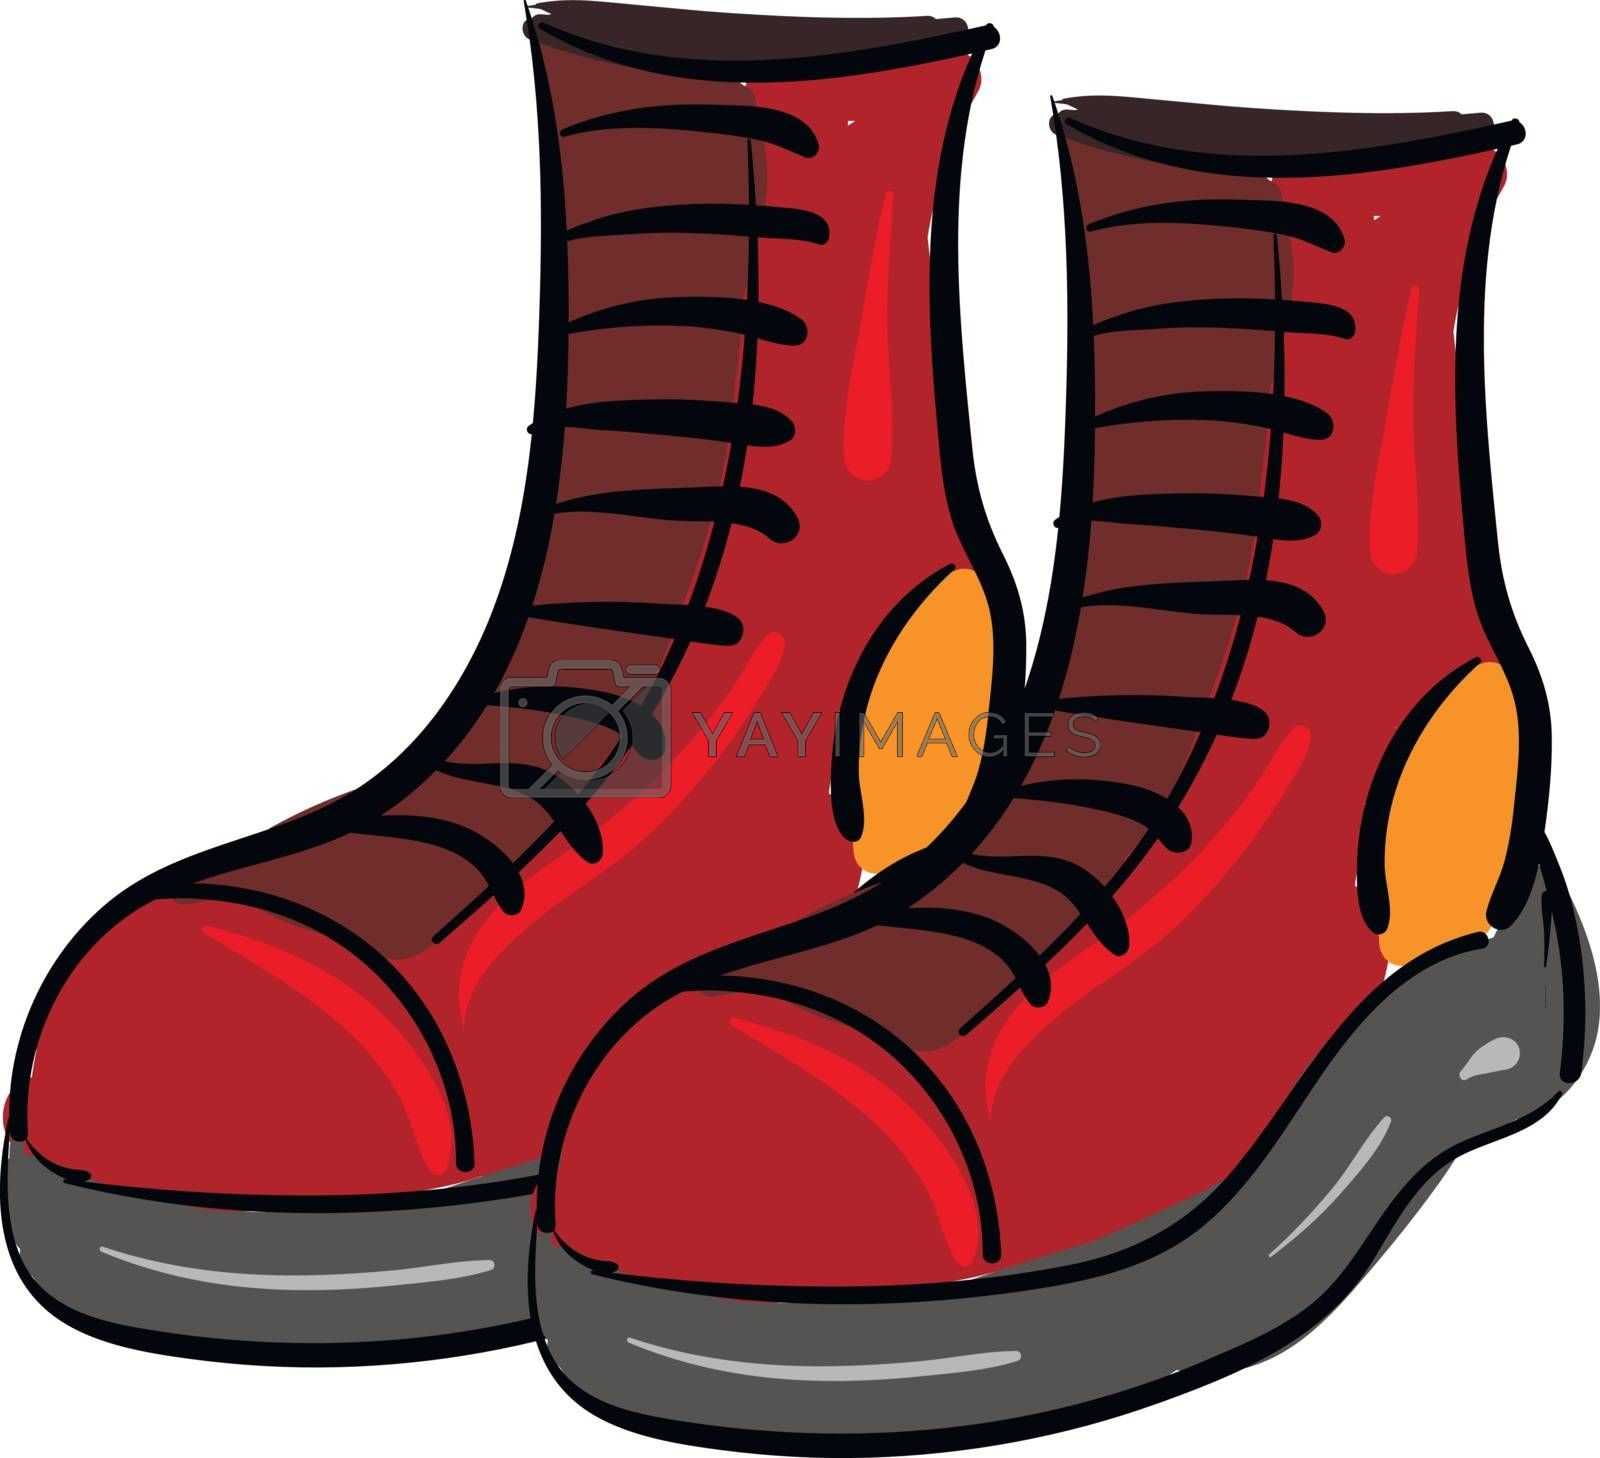 Royalty free image of Clipart of a pair of red boots vector or color illustration by Morphart